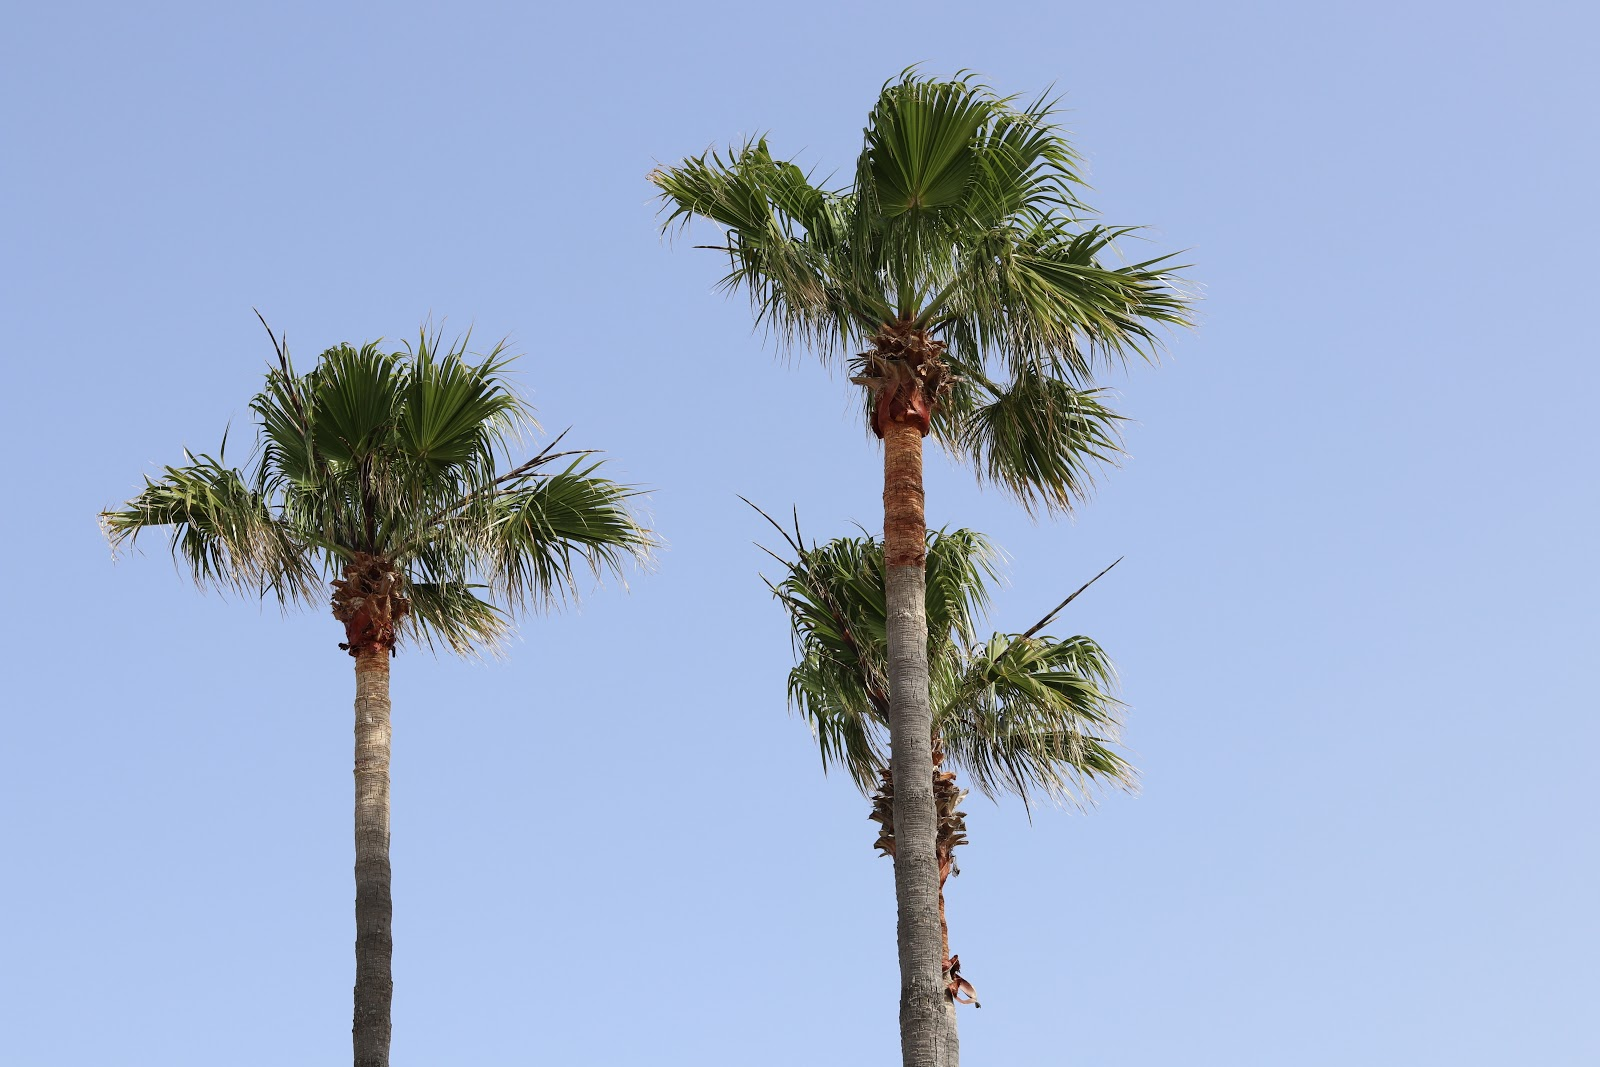 Green Palm Trees against blue sky, Sotogrande, Spain